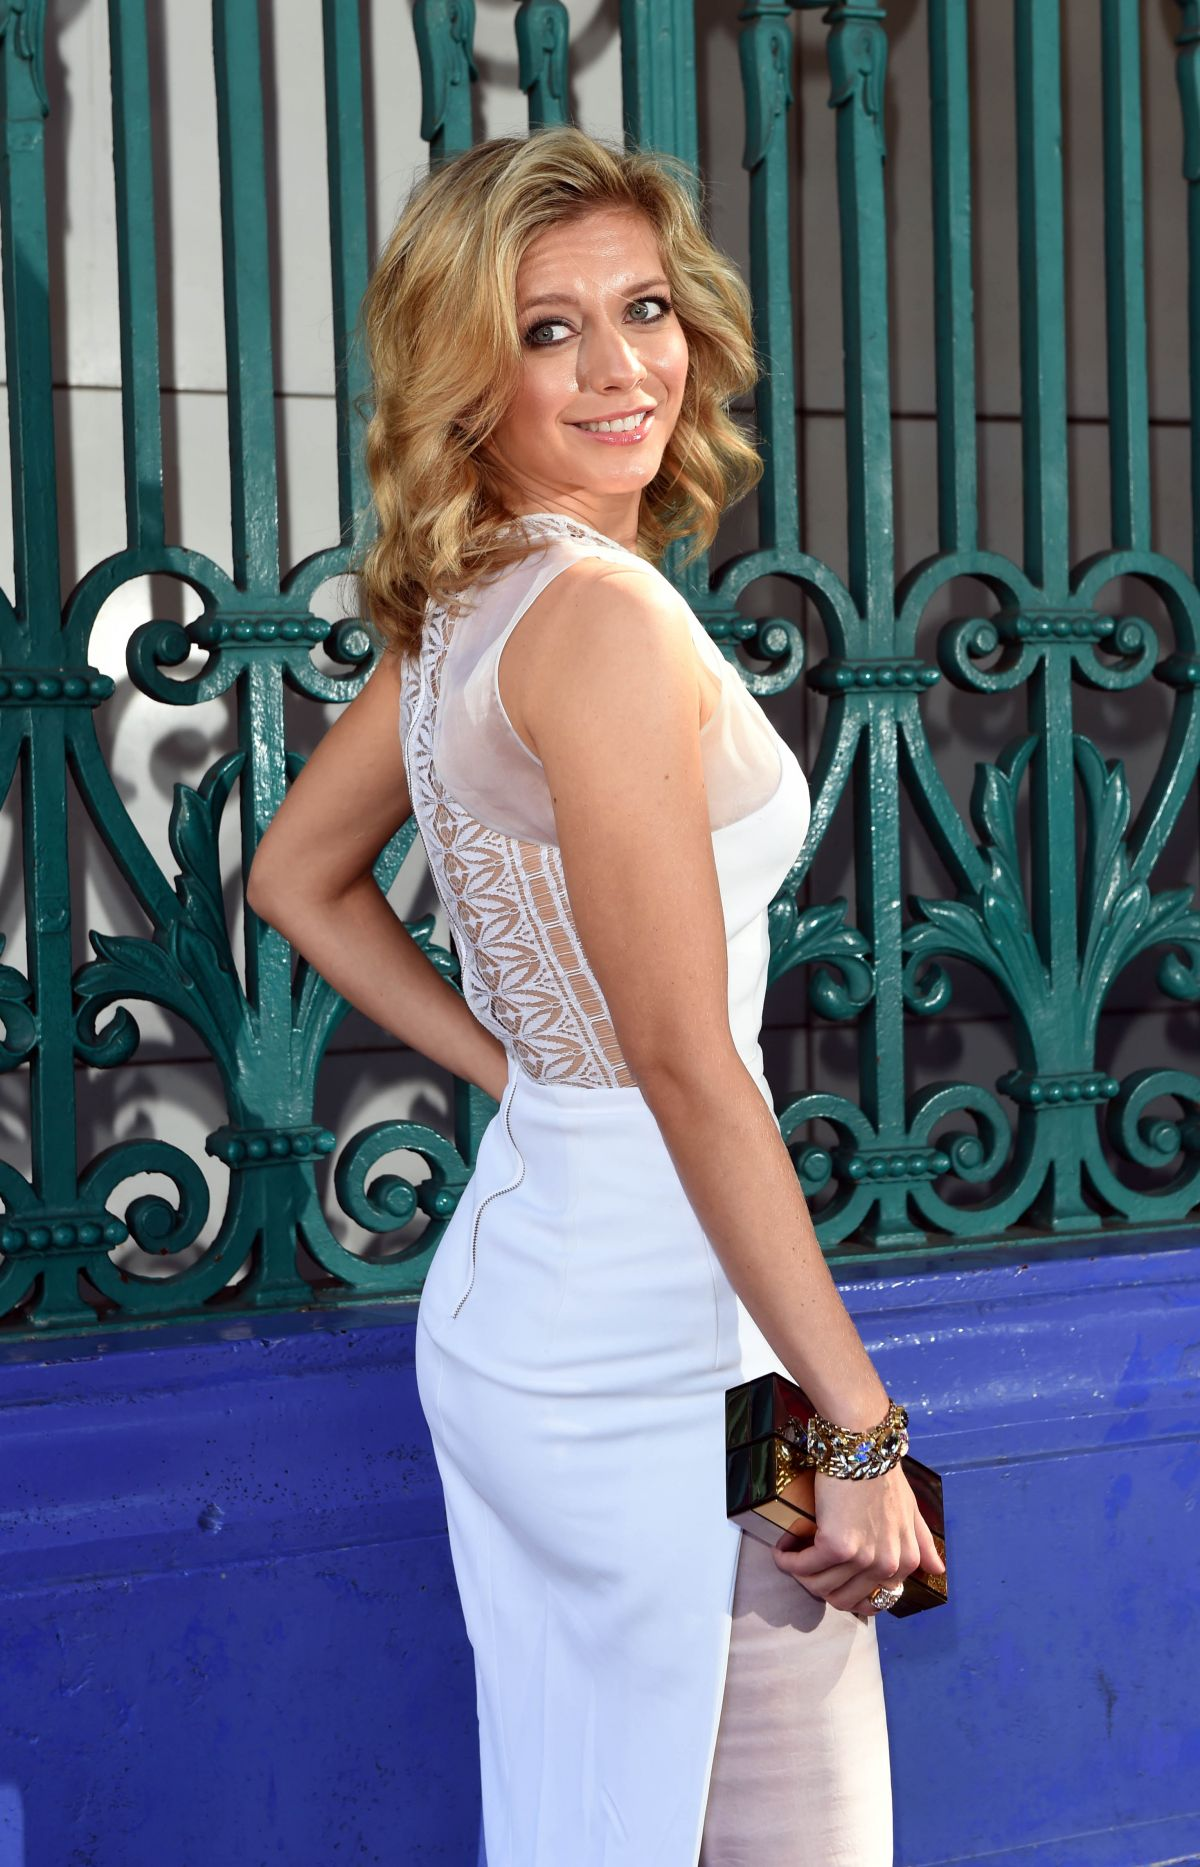 rachel-riley-naughty-pics